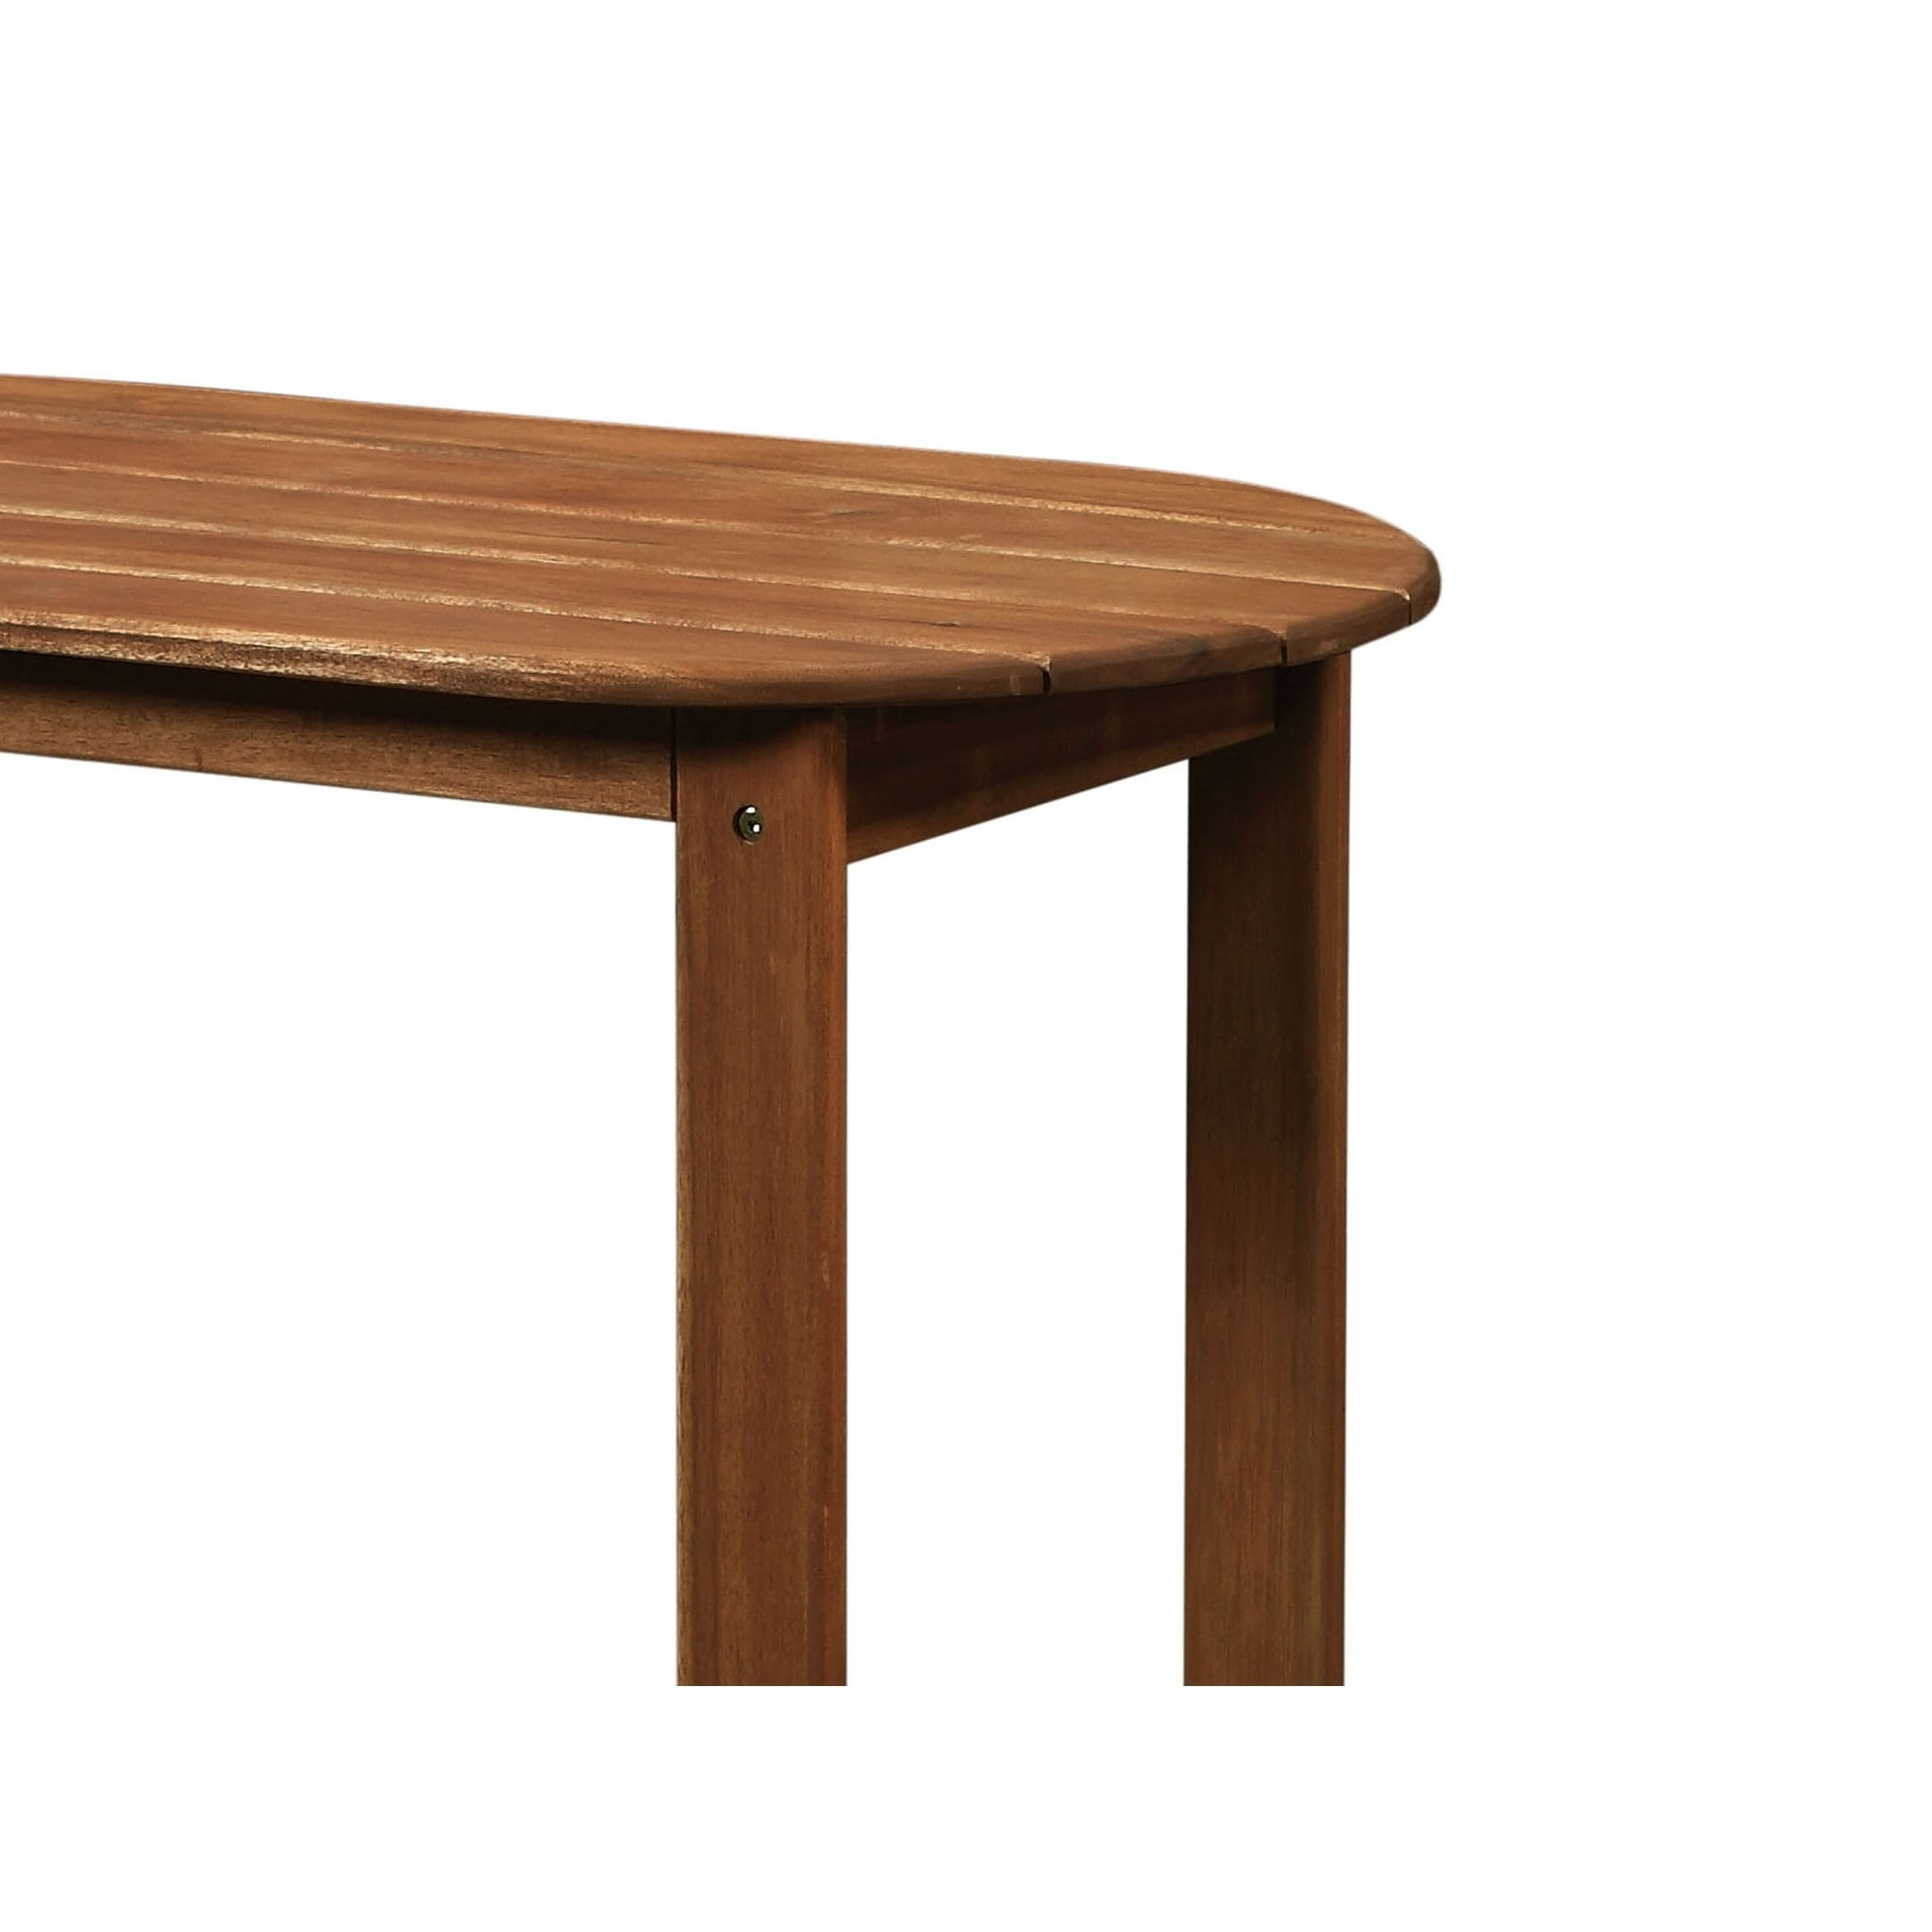 Astonishing Outdoor Wooden Coffee Table With Slatted Oblong Shape Top Brown Home Interior And Landscaping Ologienasavecom